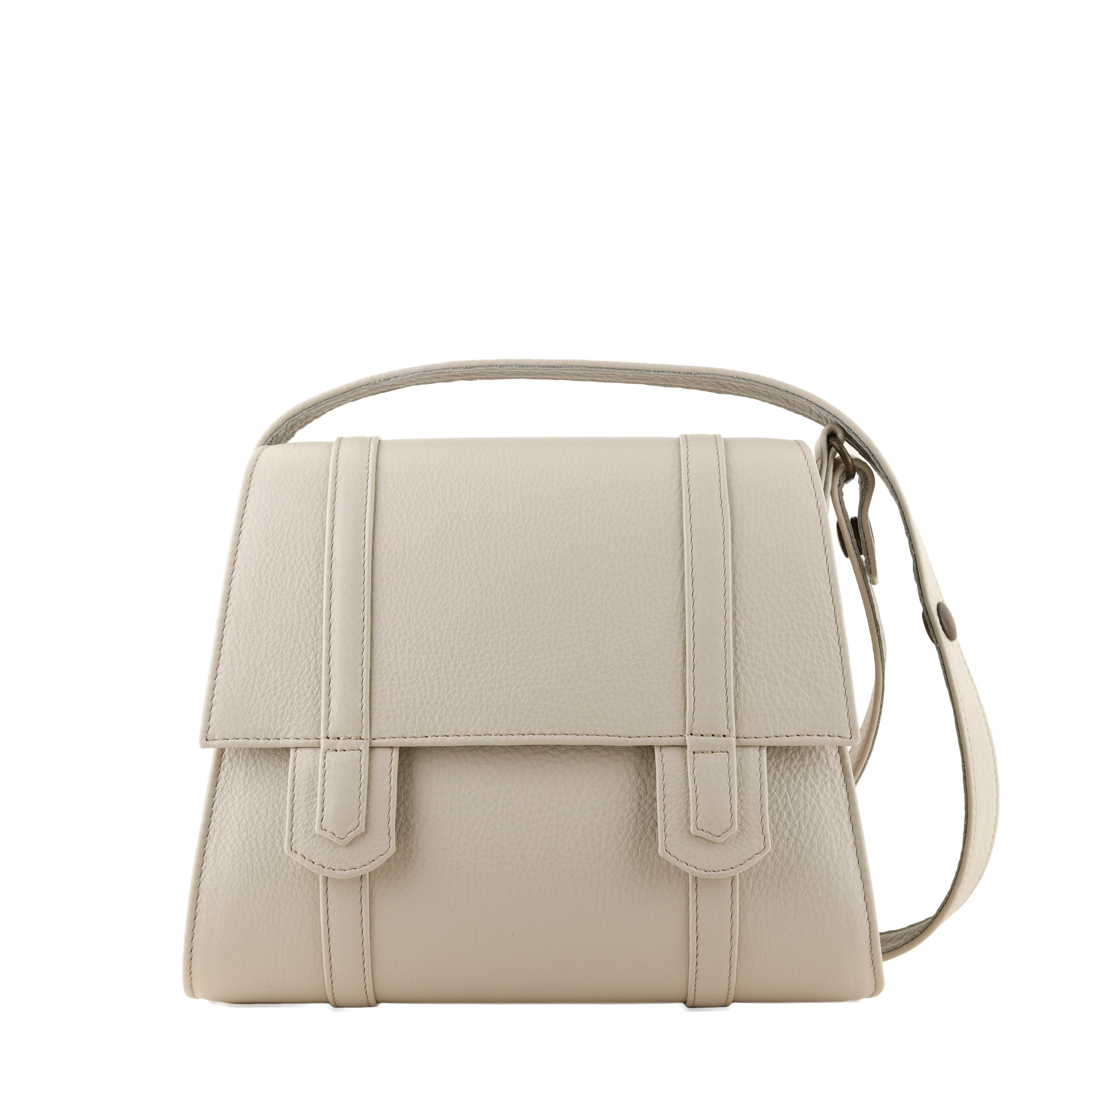 Chloe Ivory Across Body Leather Bag